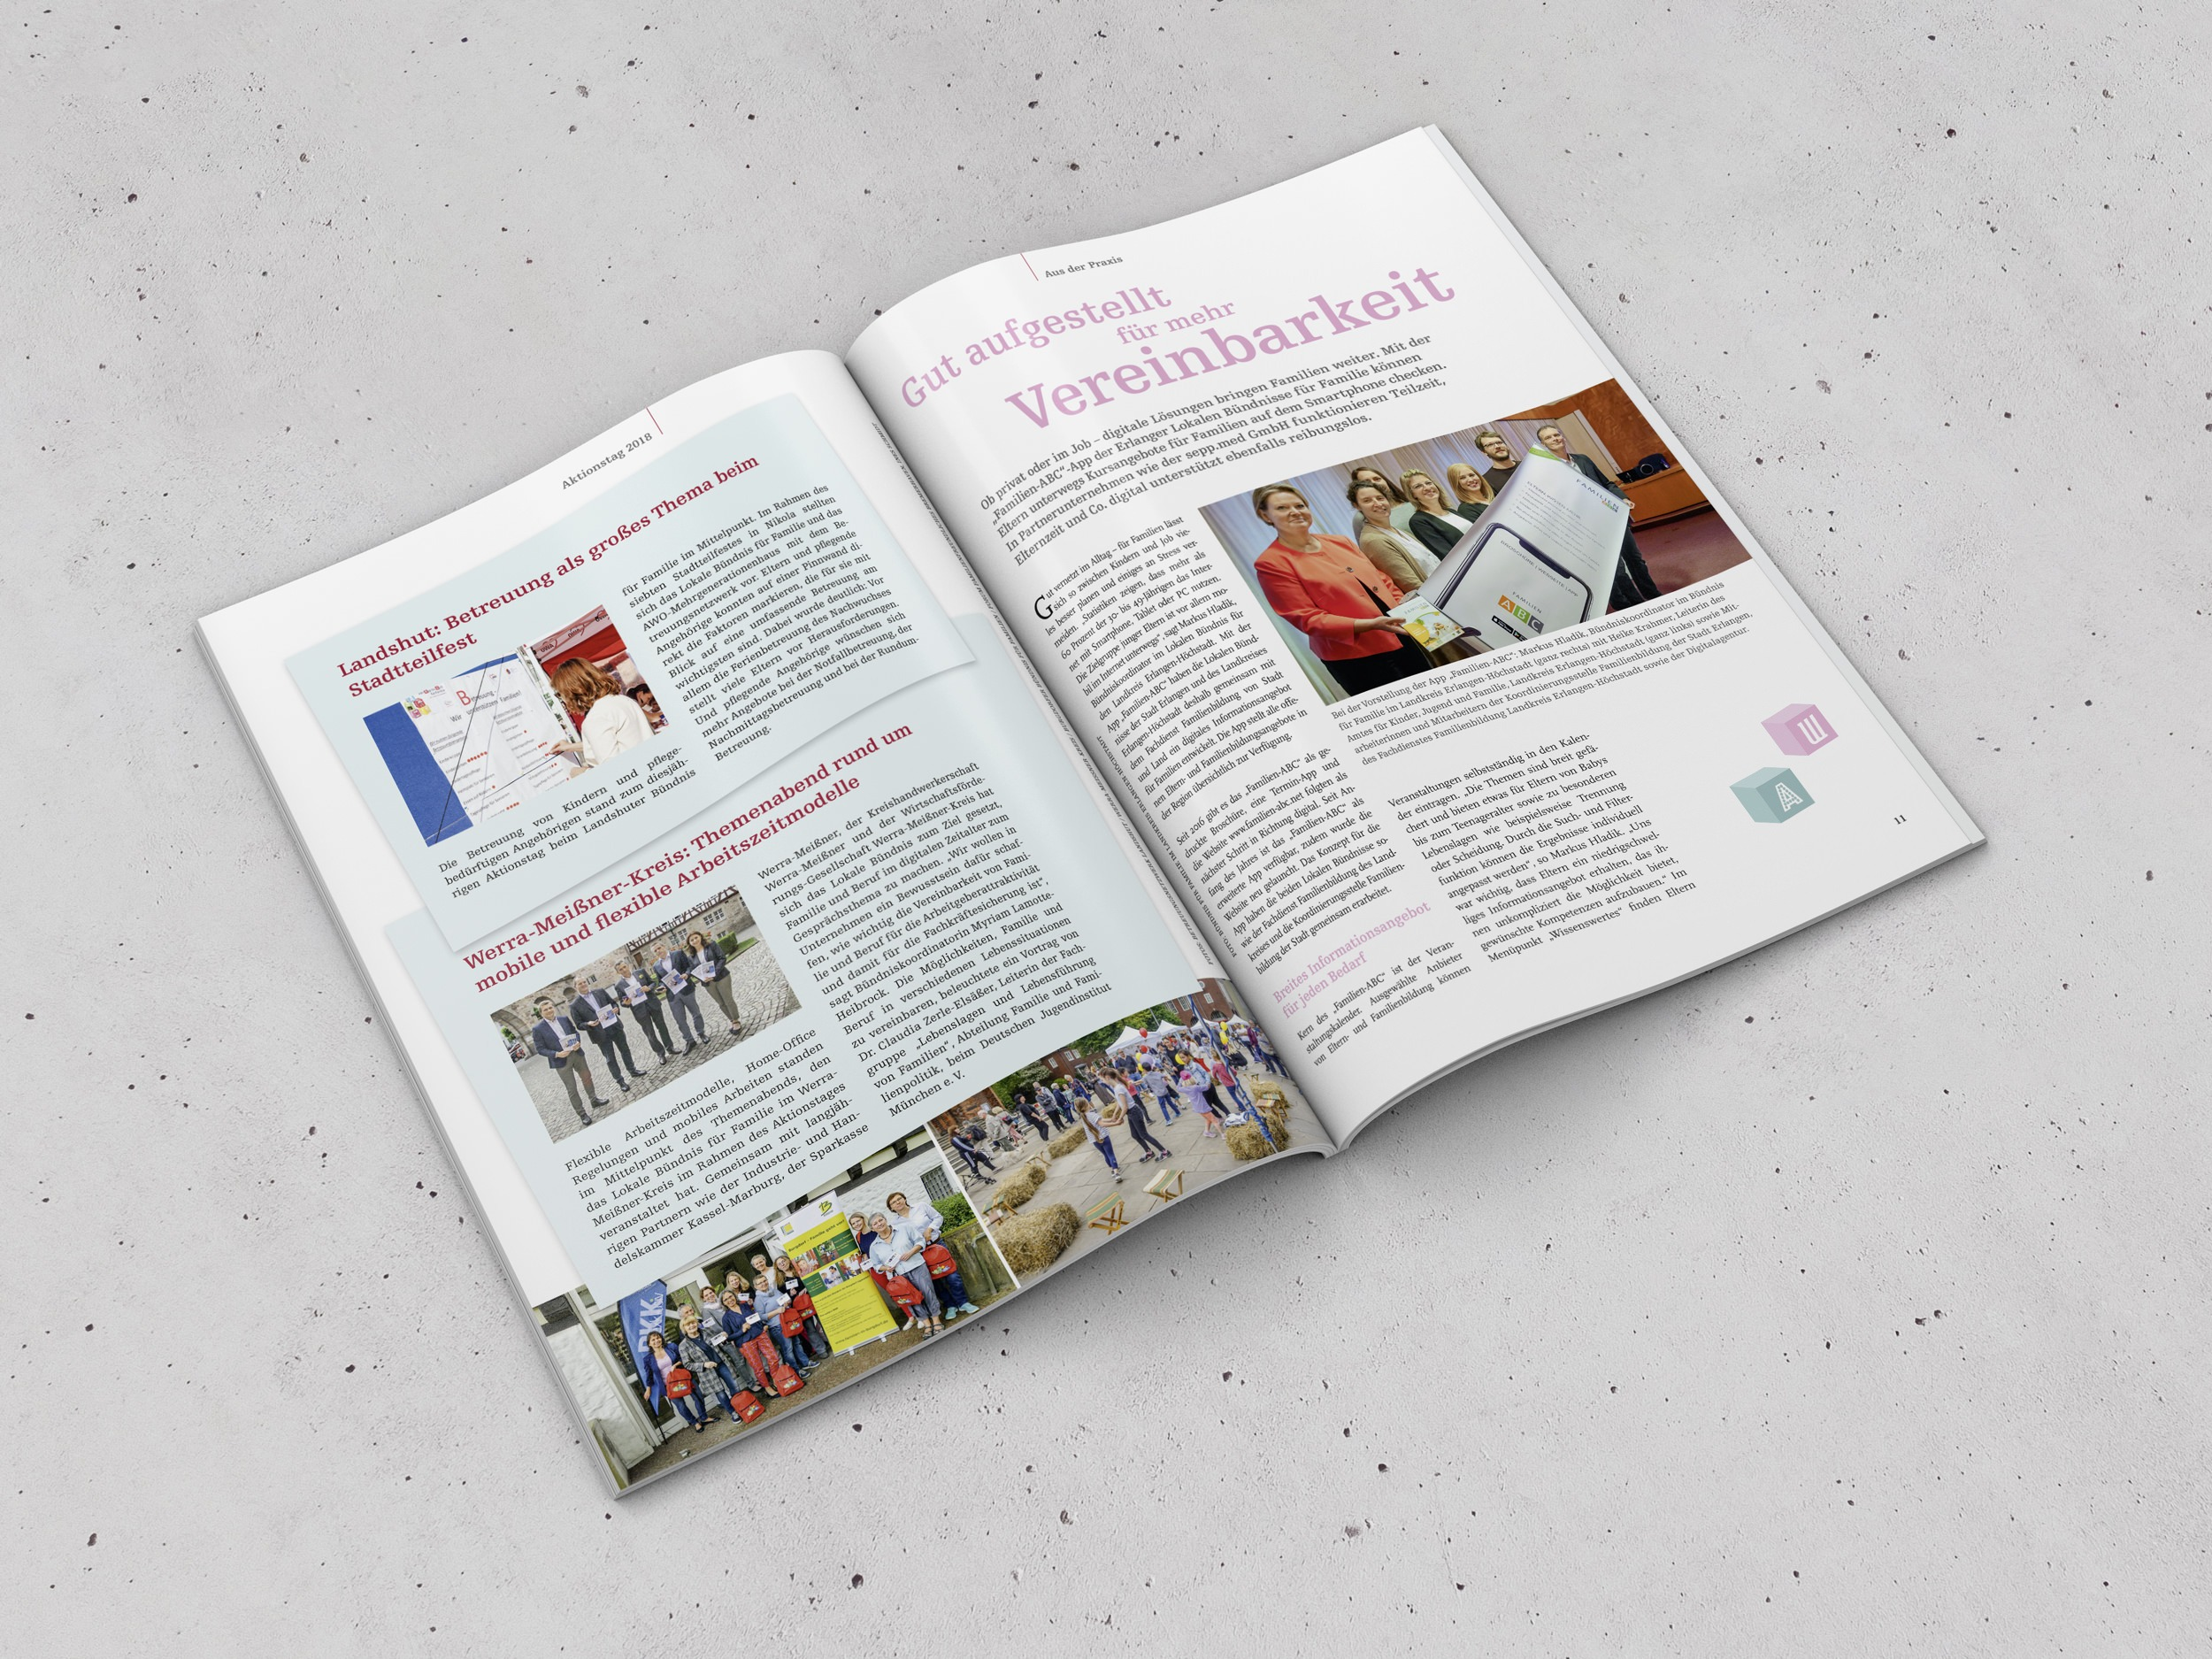 "BMFSFJ – Lokale Bündnisse für Familie – Magazin ""Familie leben."" 